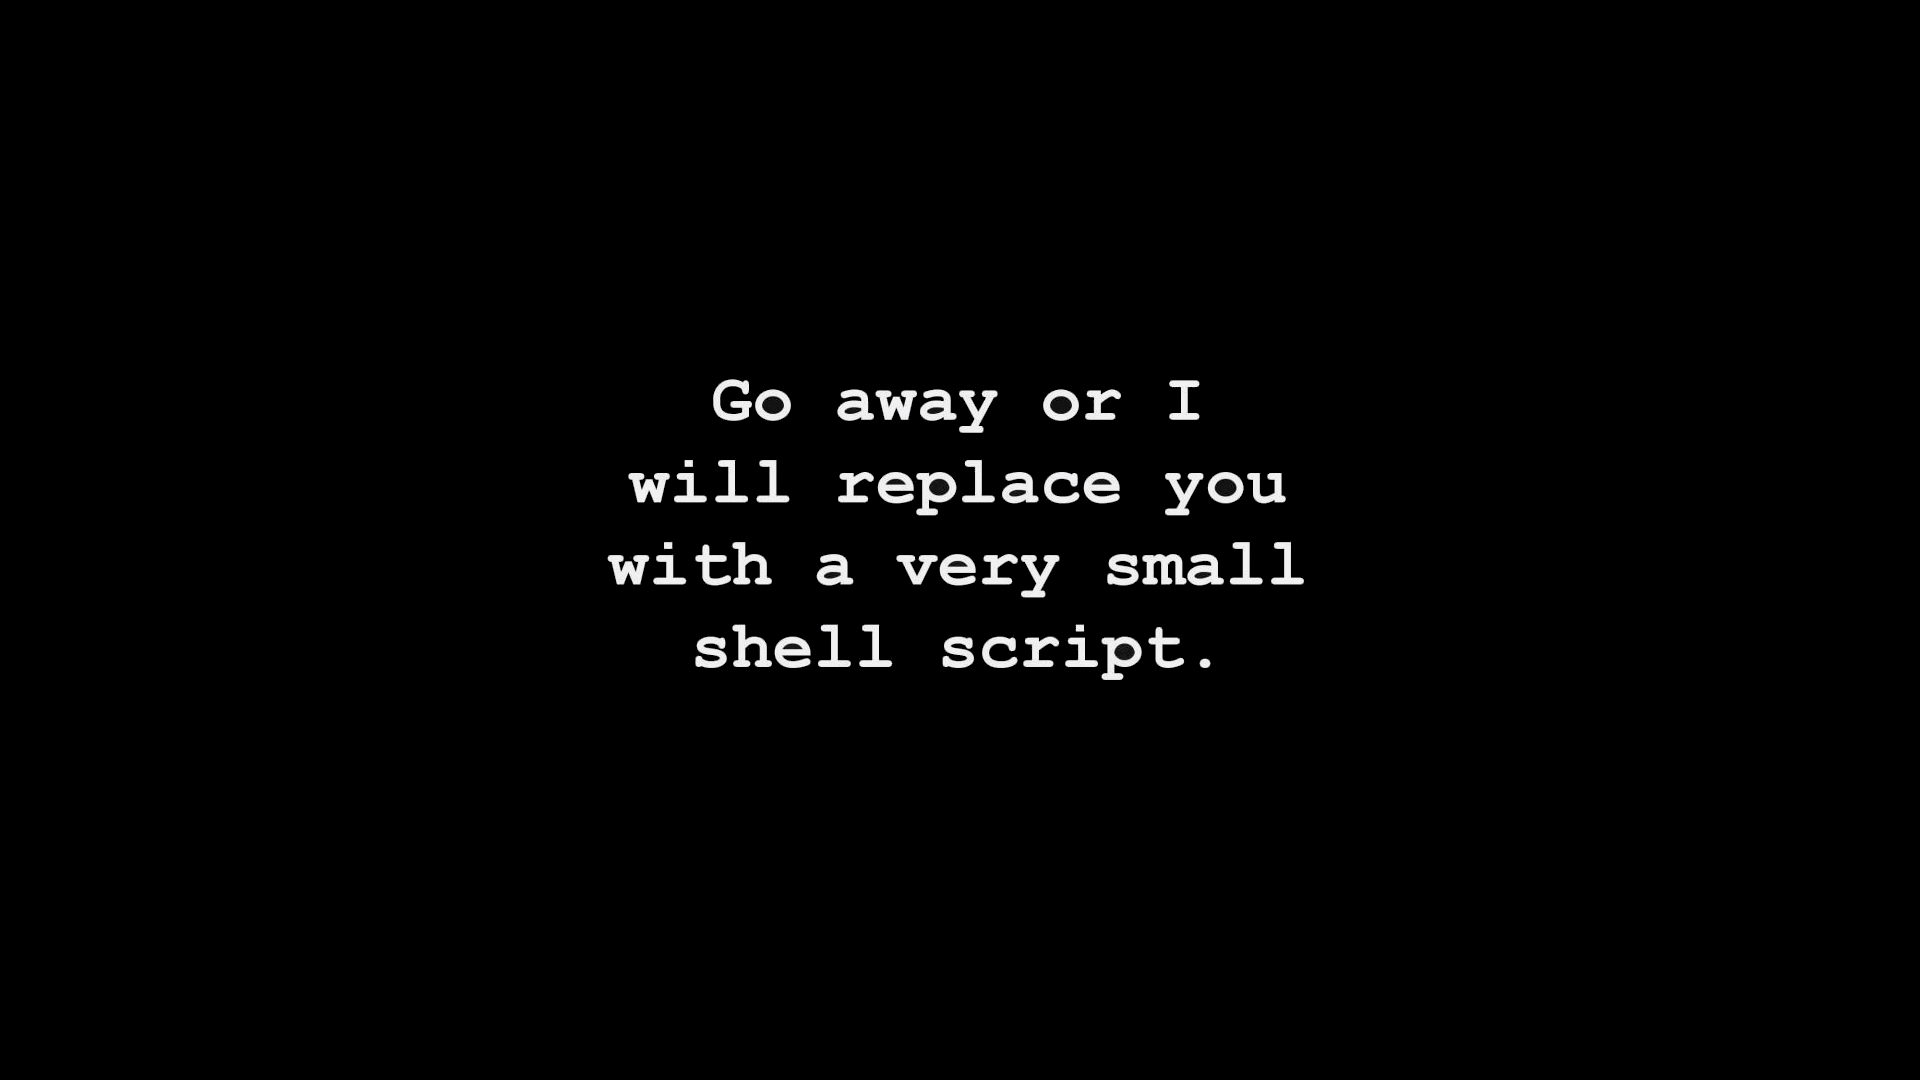 Bts Wallpaper Windows 10 Quote Shell Script Full Hd Wallpaper And Background Image